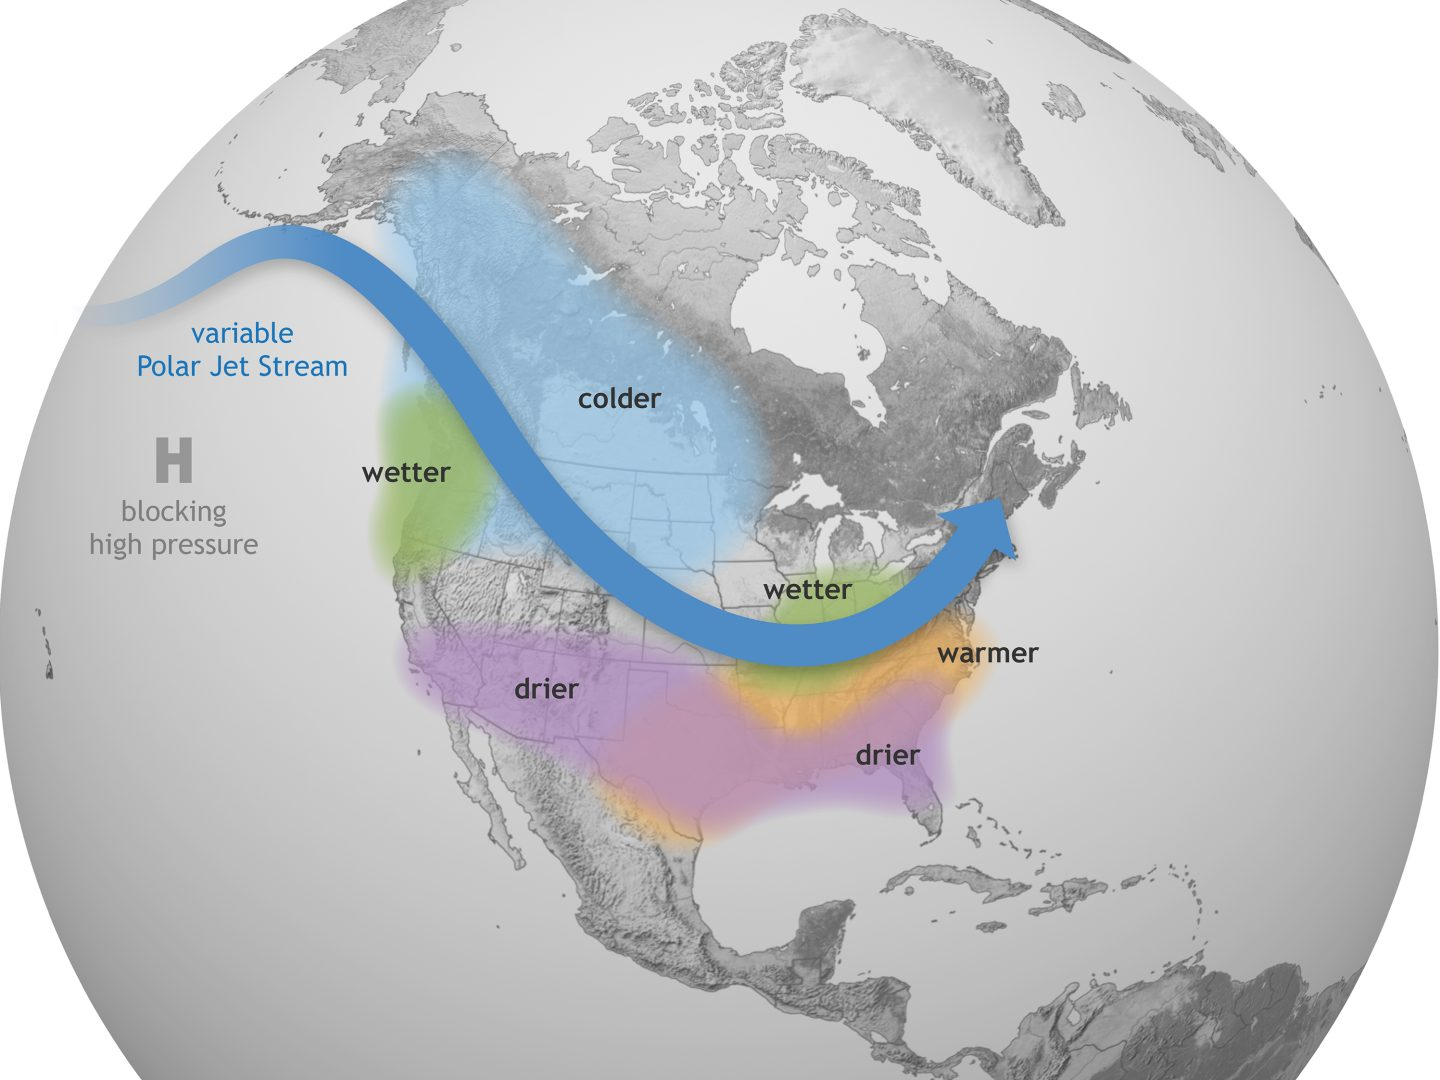 La Niña is coming. Here's what that means for winter weather in the U.S. | WITF